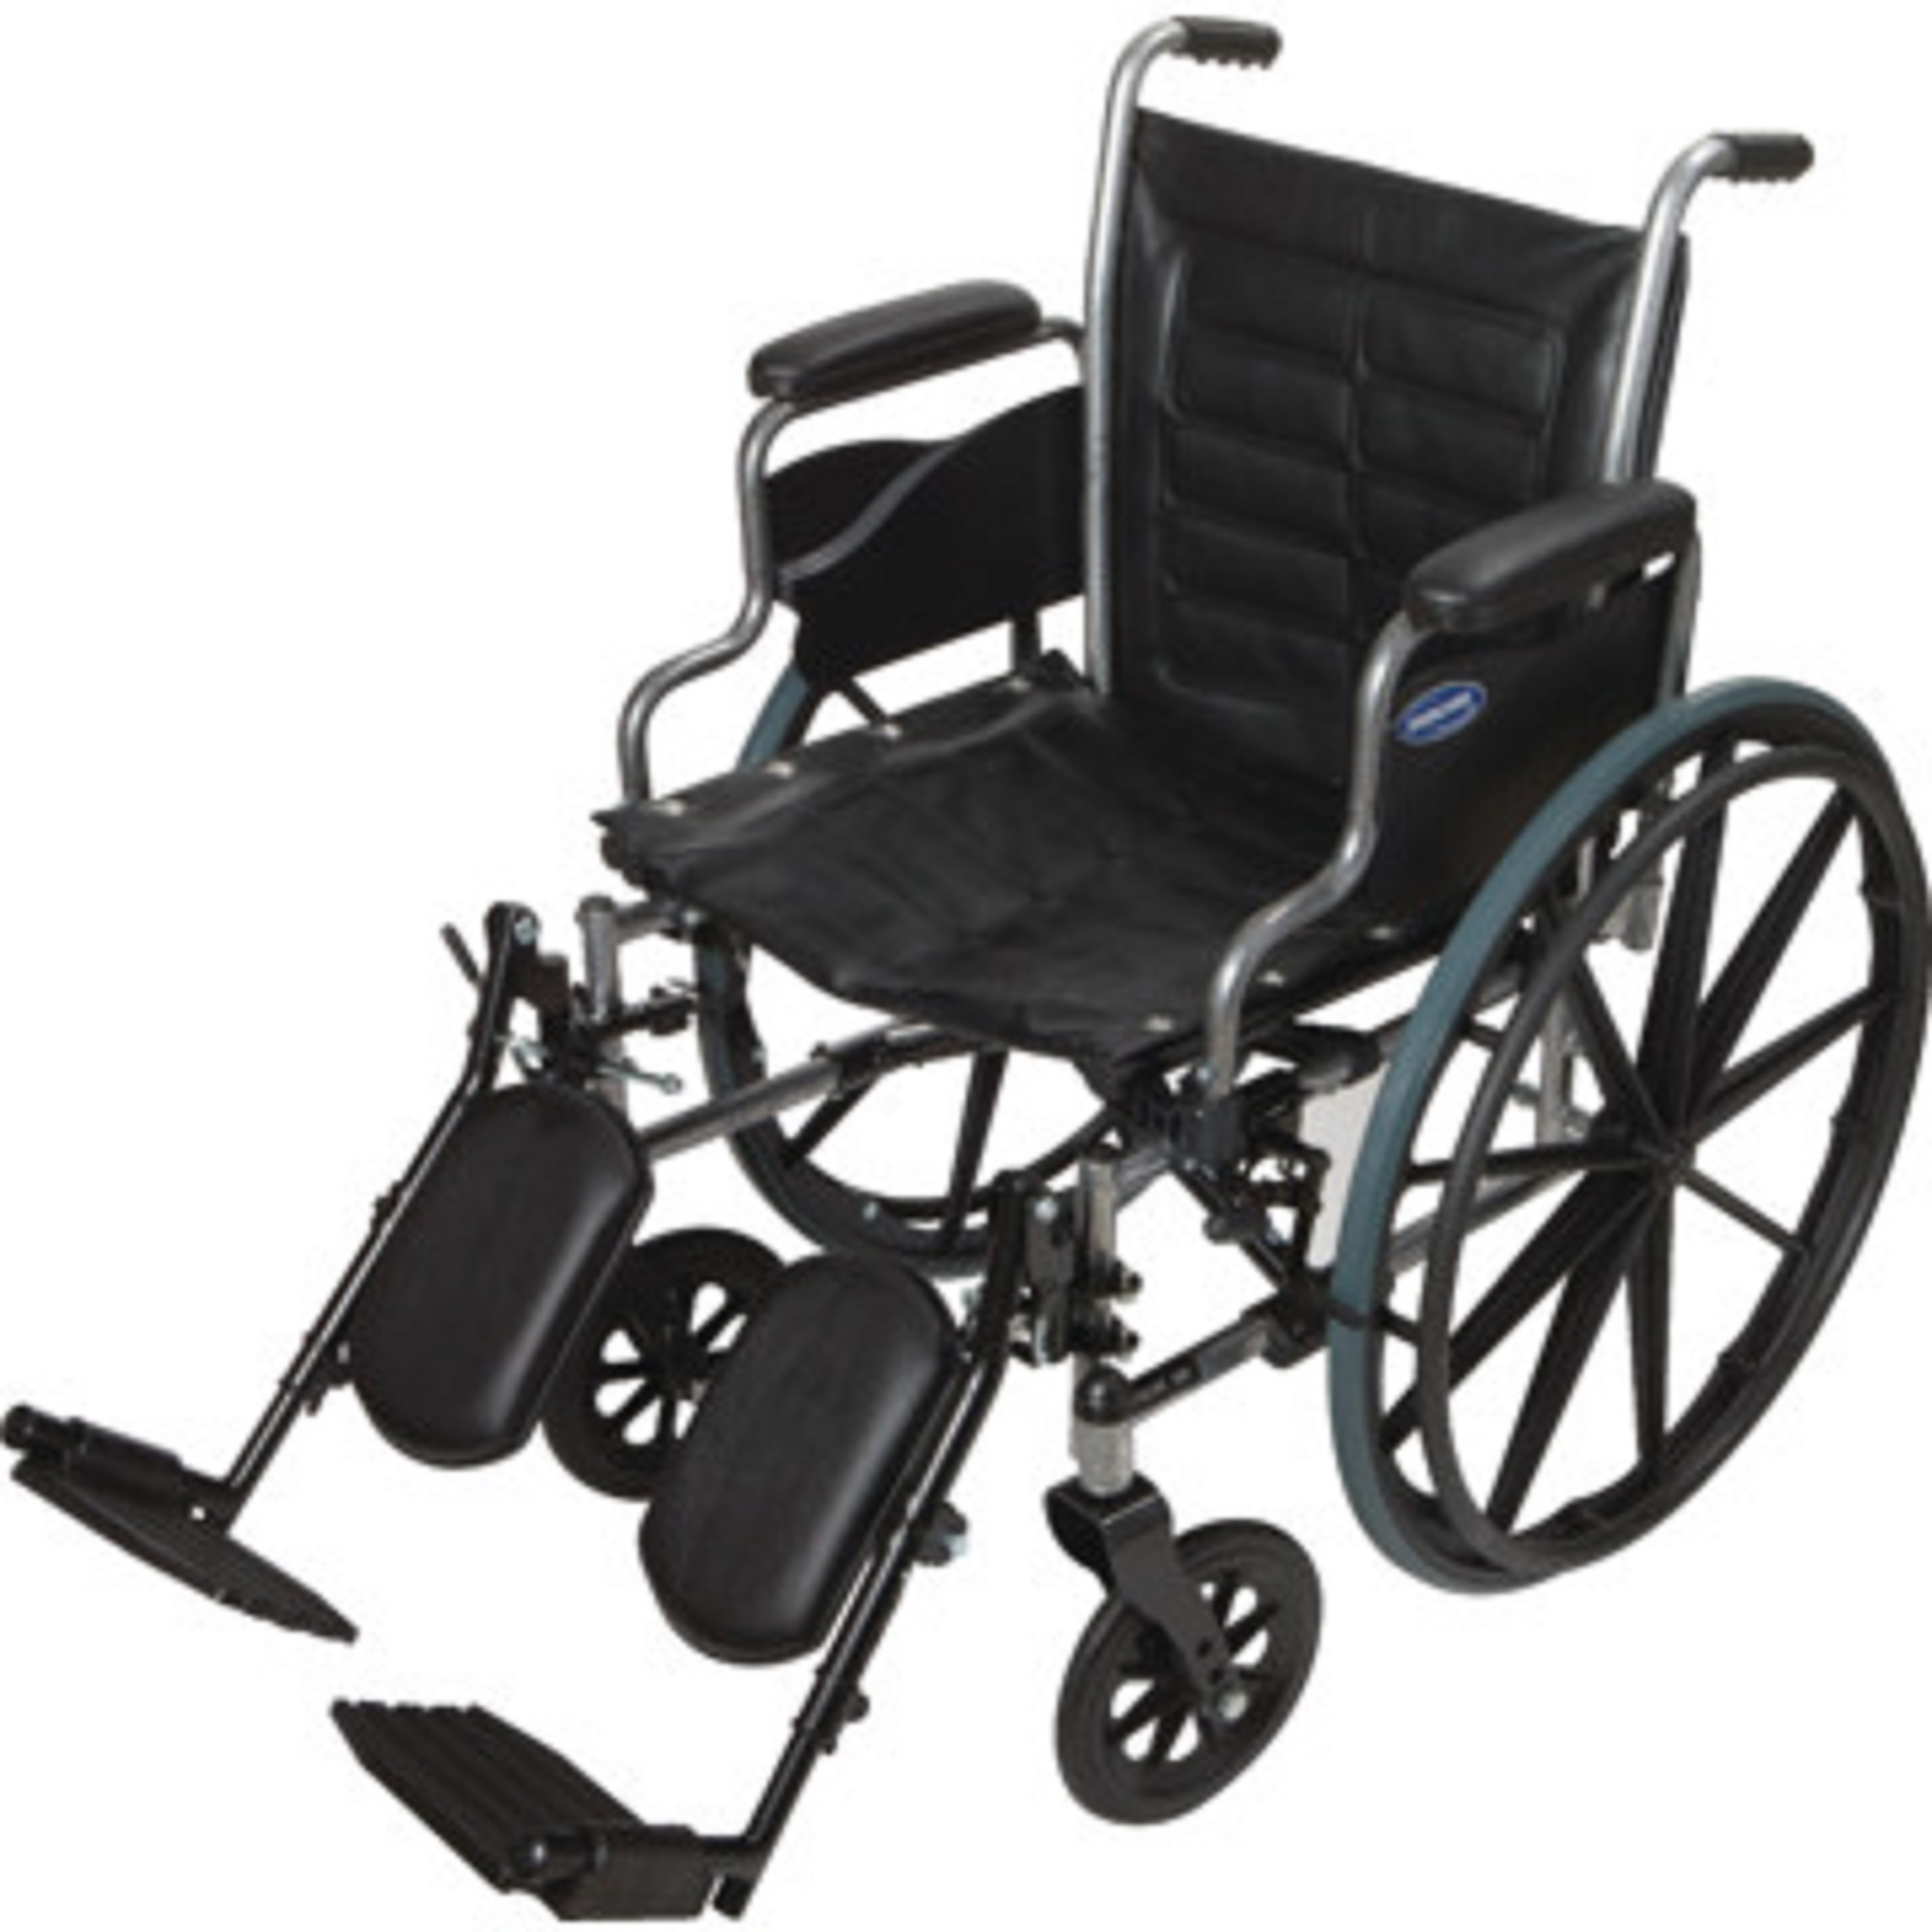 """Invacare - Tracer IV - Manual Wheelchair - Desk-Length Armrest with Elevating Legrest - 22"""" x 18"""" Seat - Silver Vein"""